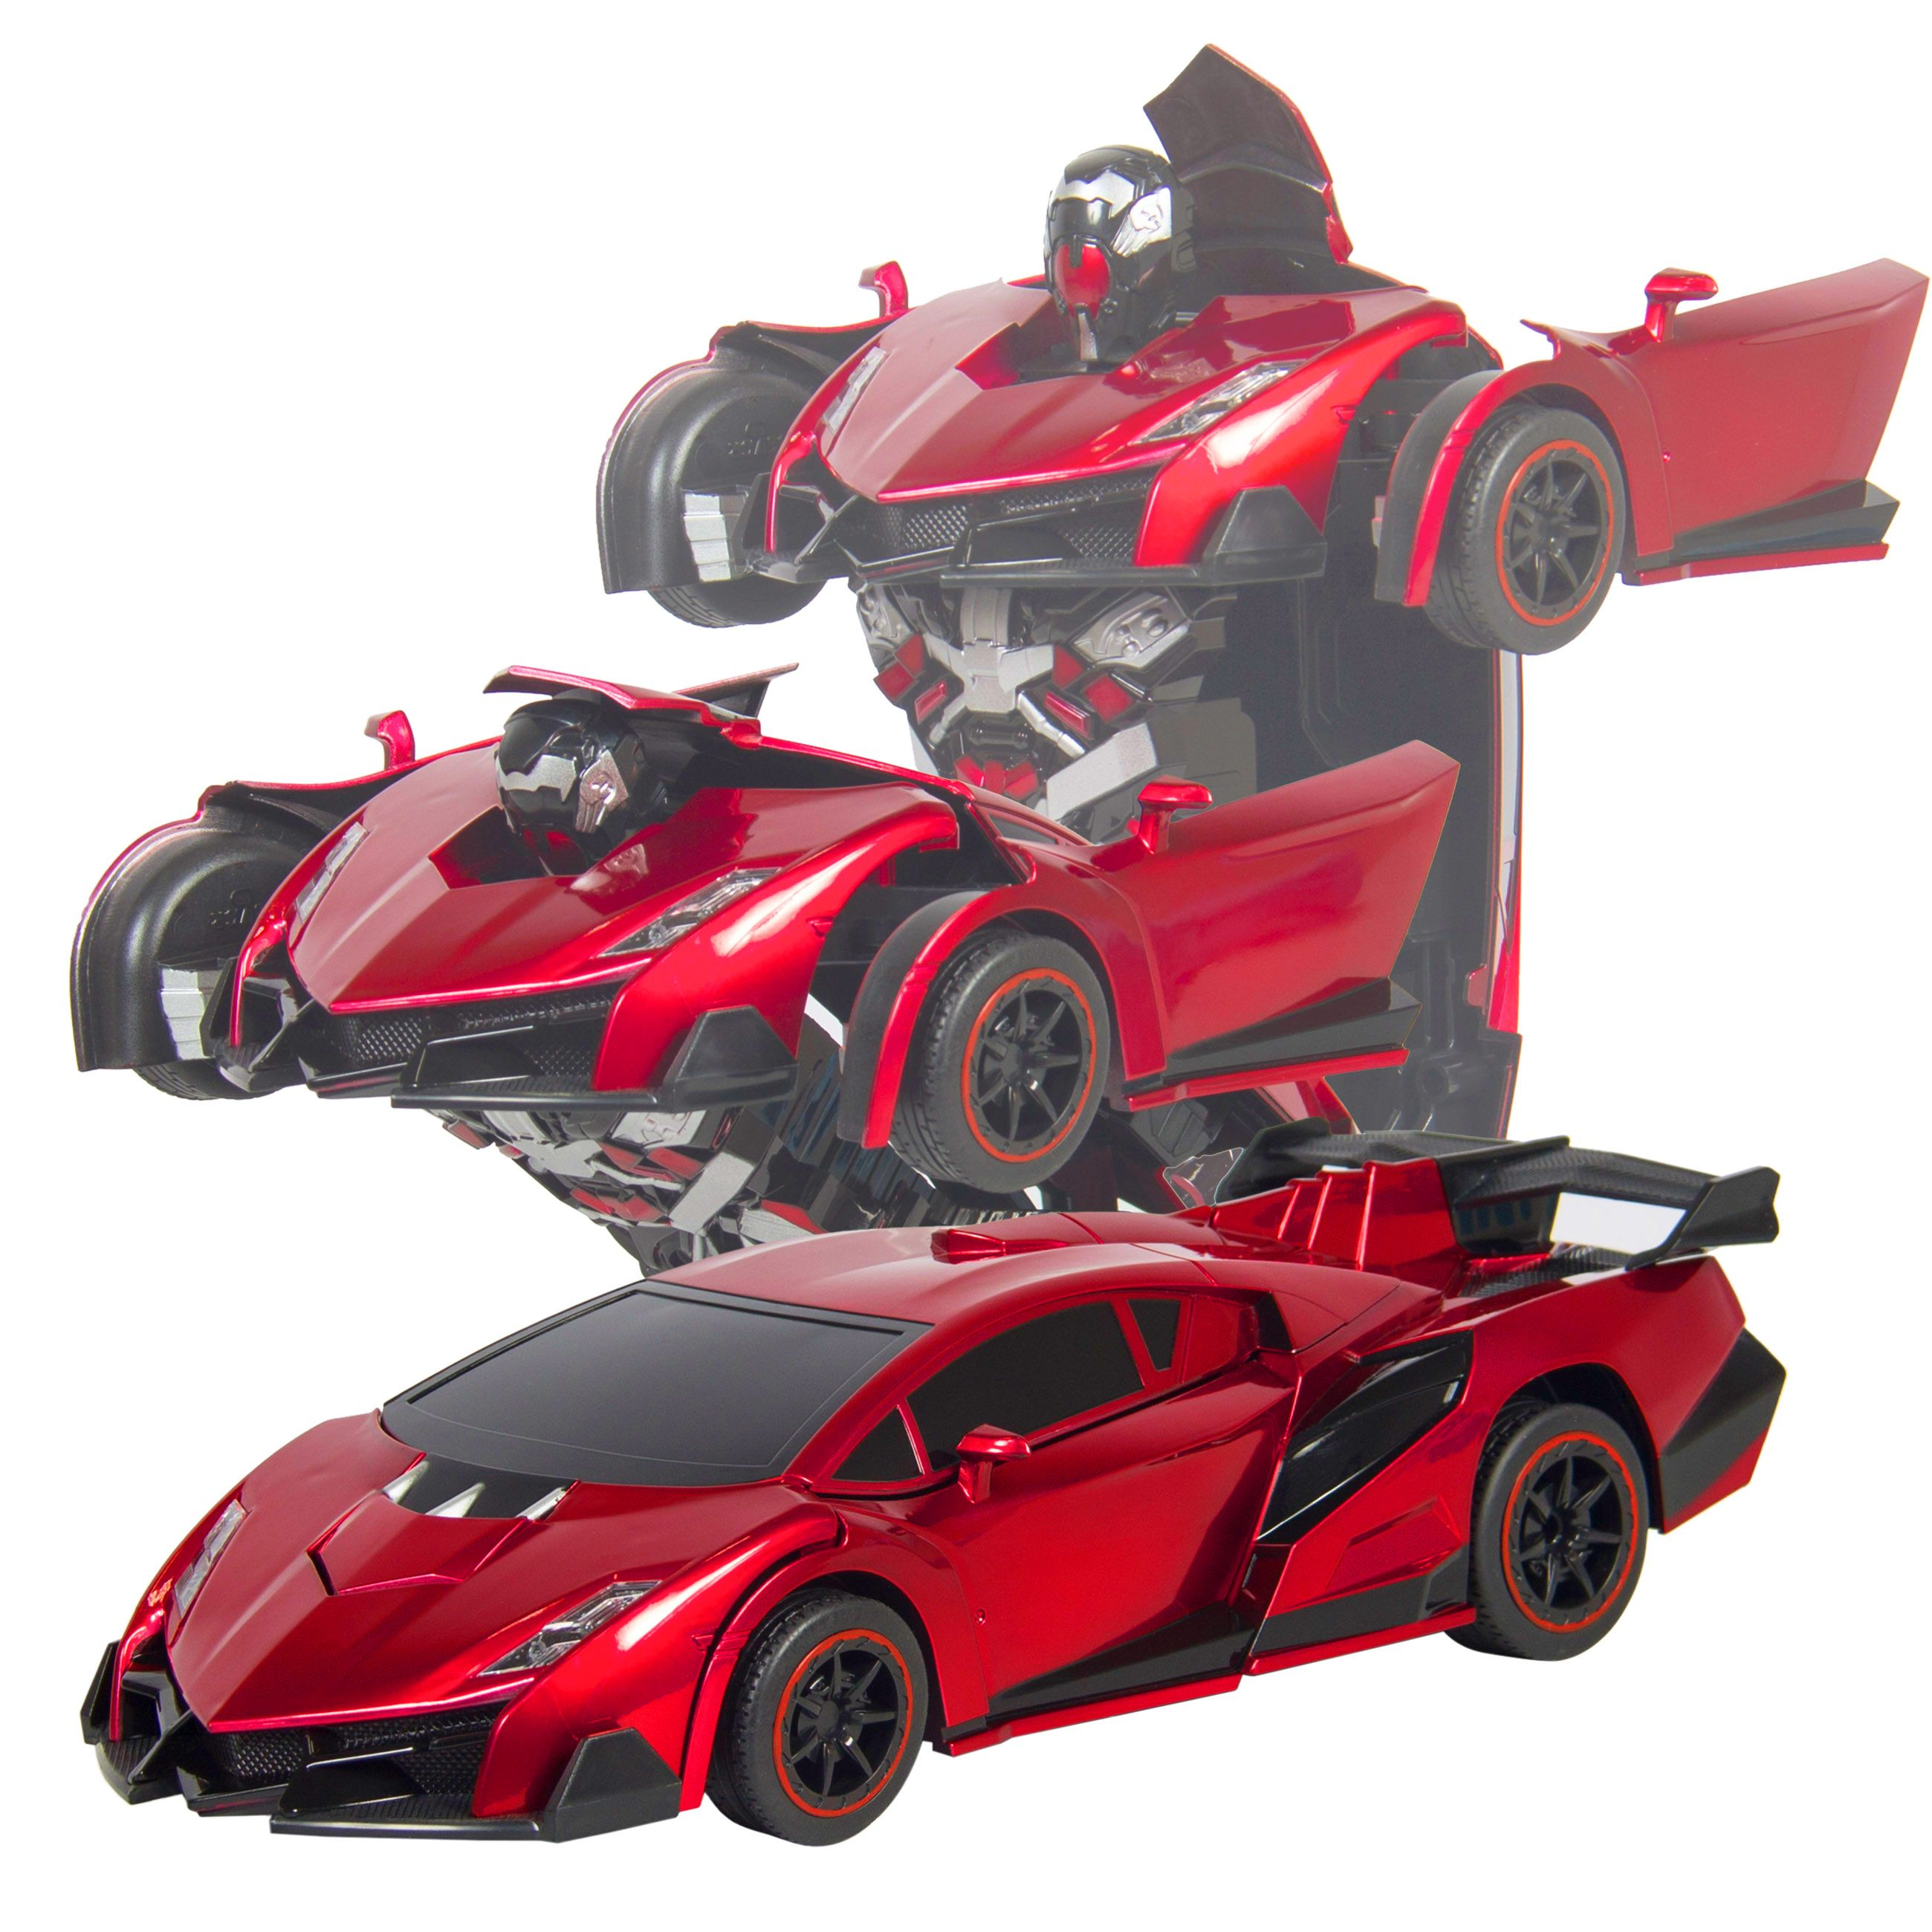 Toys in 2020 Remote control cars, Transformers cars, Toy car